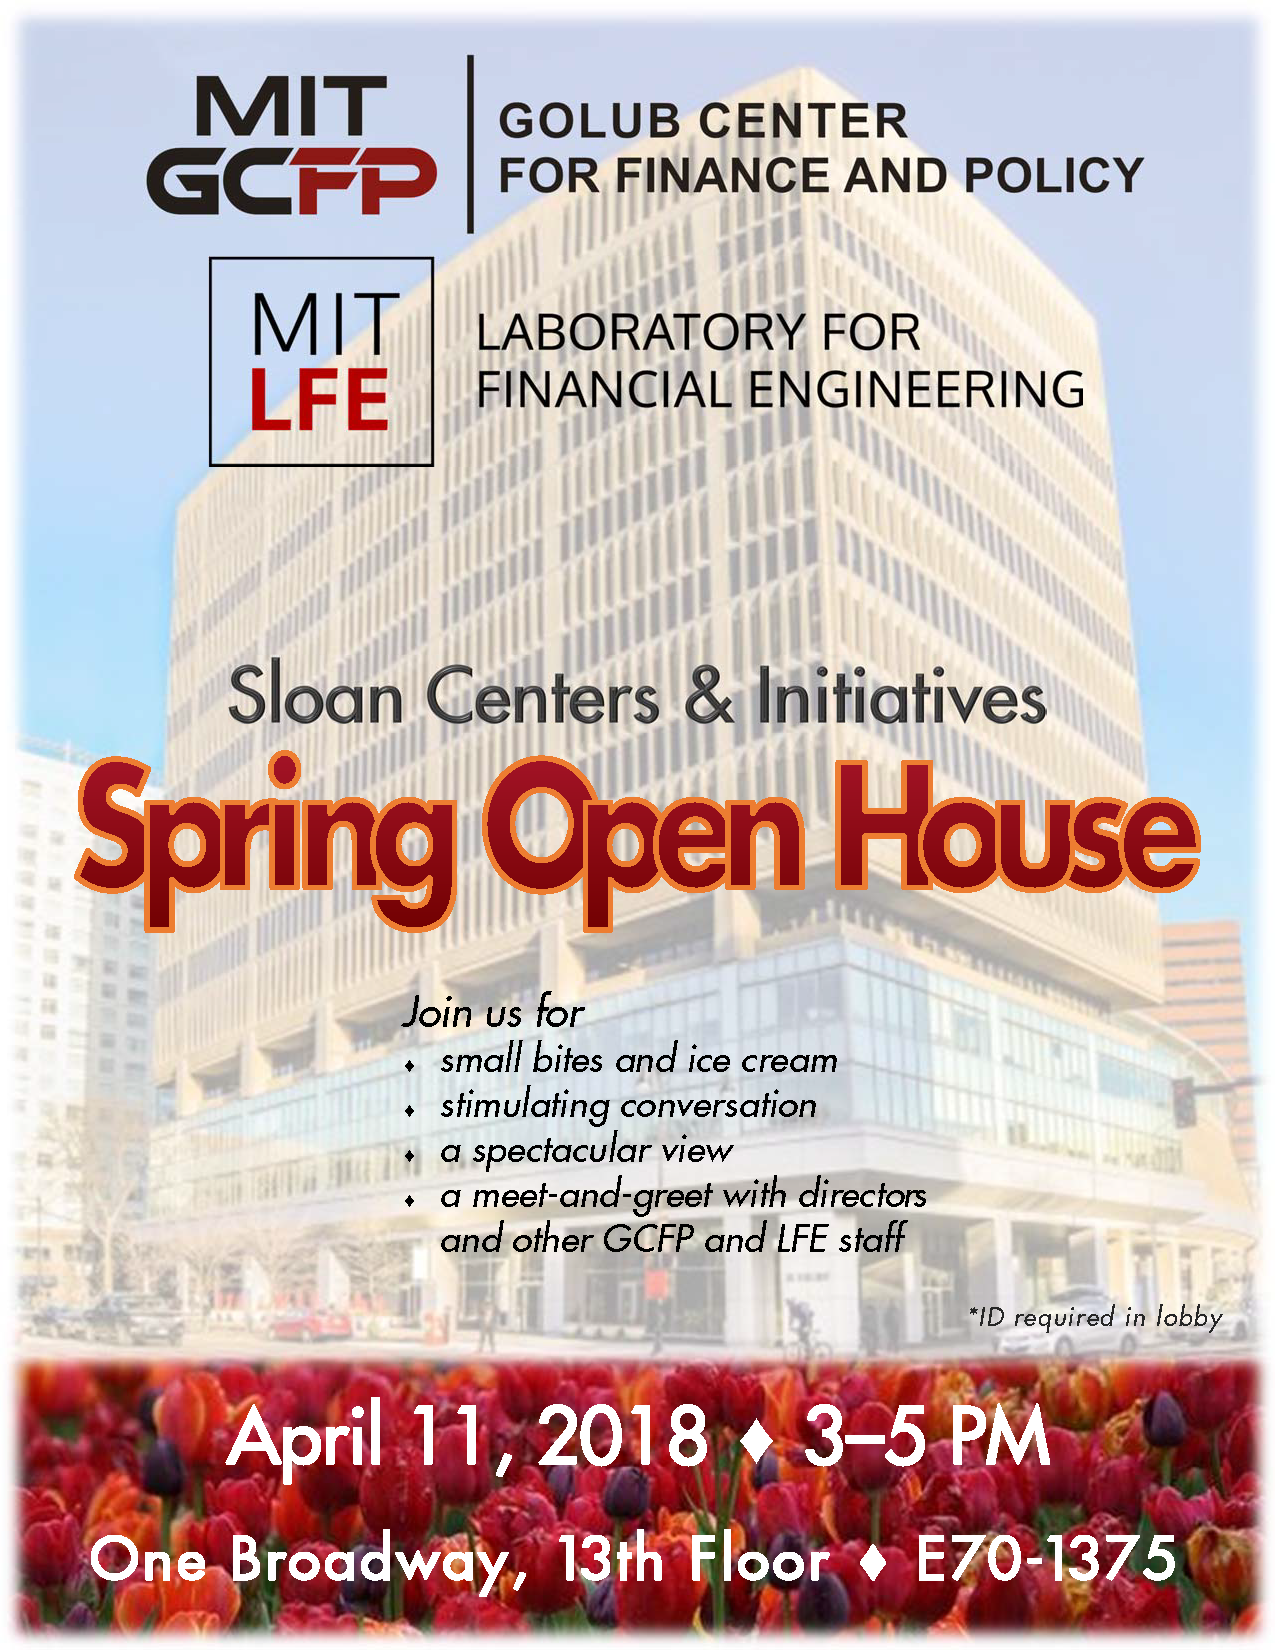 GCFP and LFE Spring Open House April 11, 3-5PM